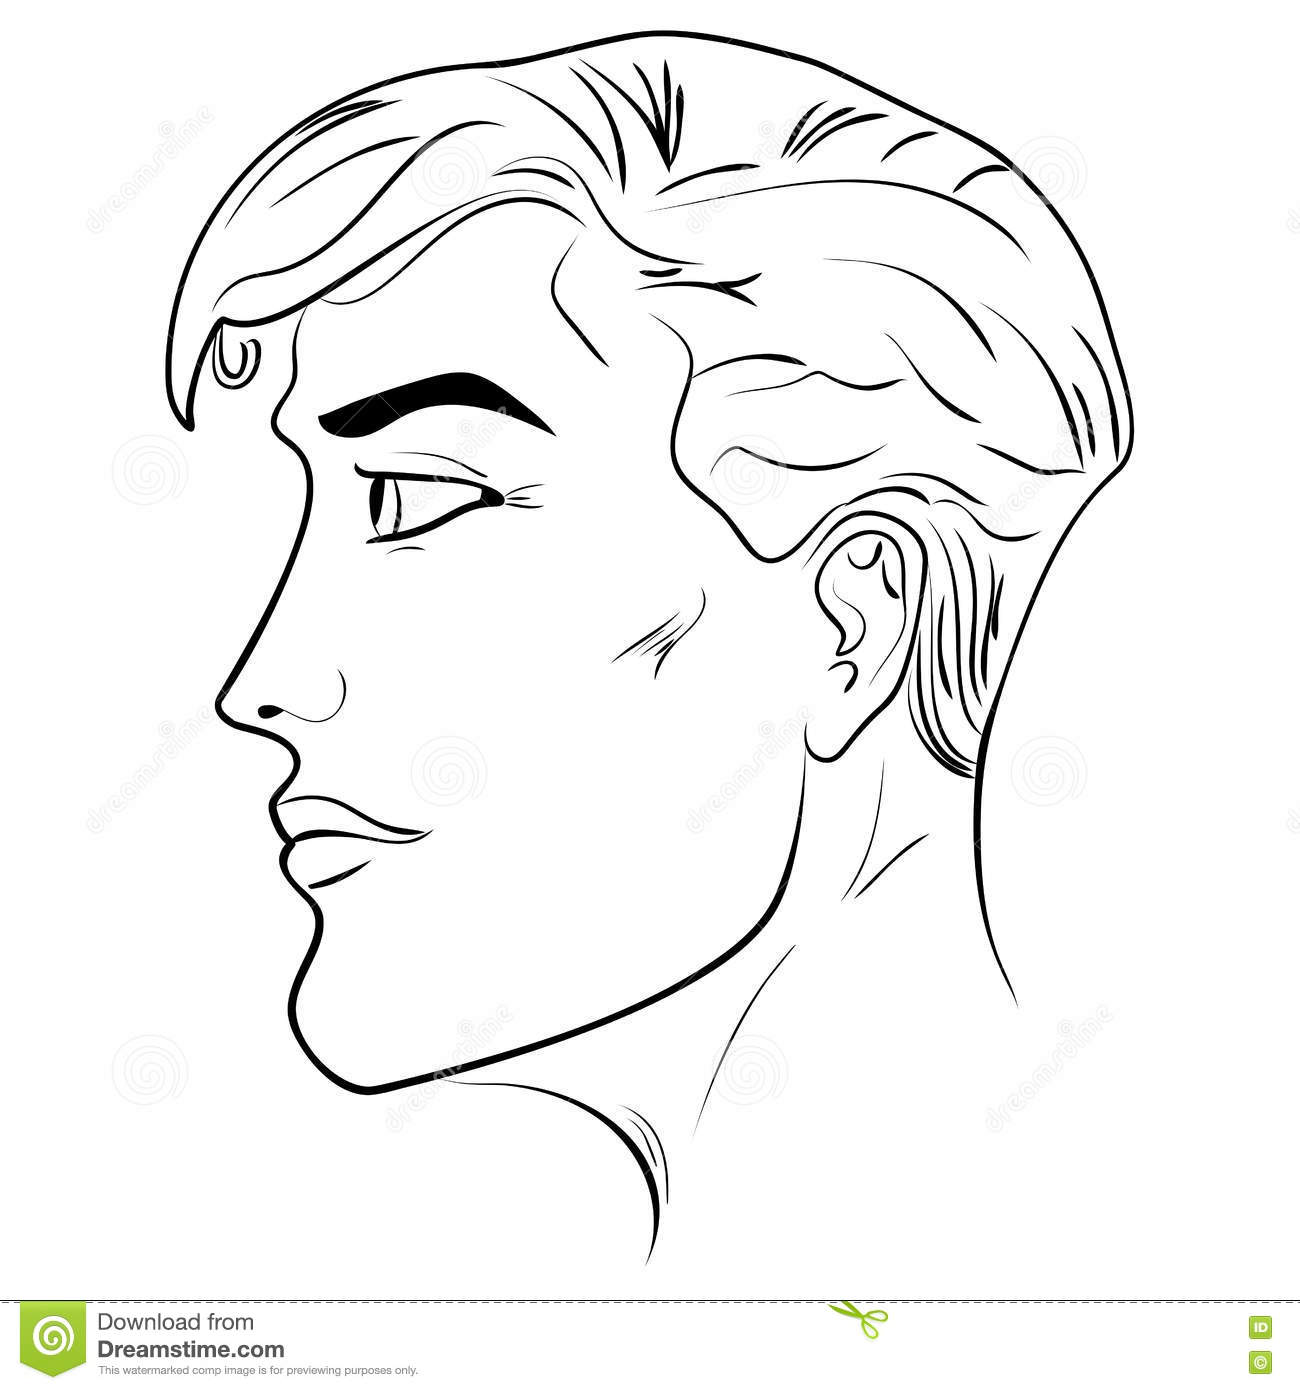 Outline Side Profile Of A Human Male Head Stock Vector